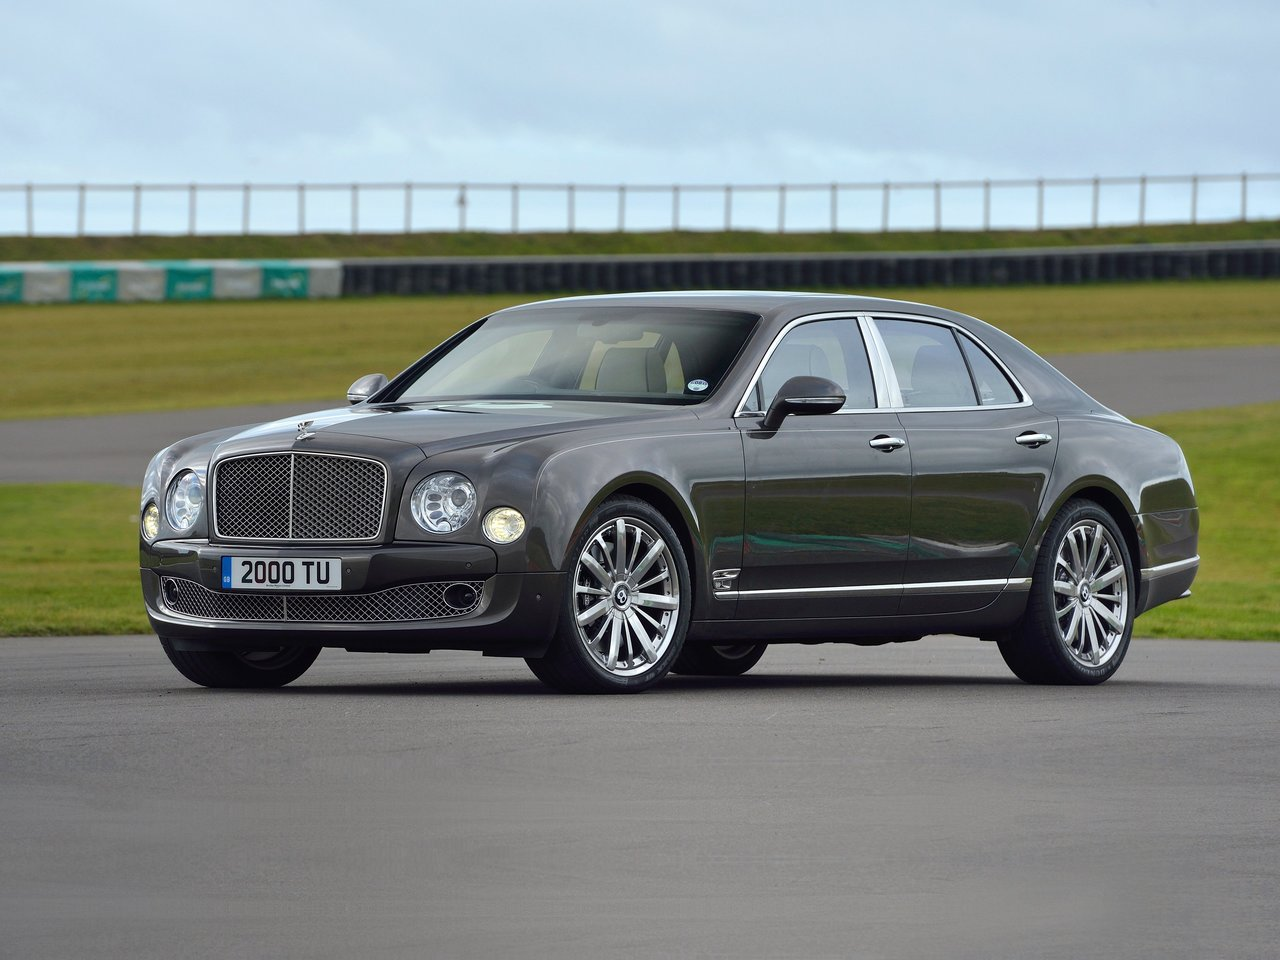 Автомобиль Bentley Mulsanne